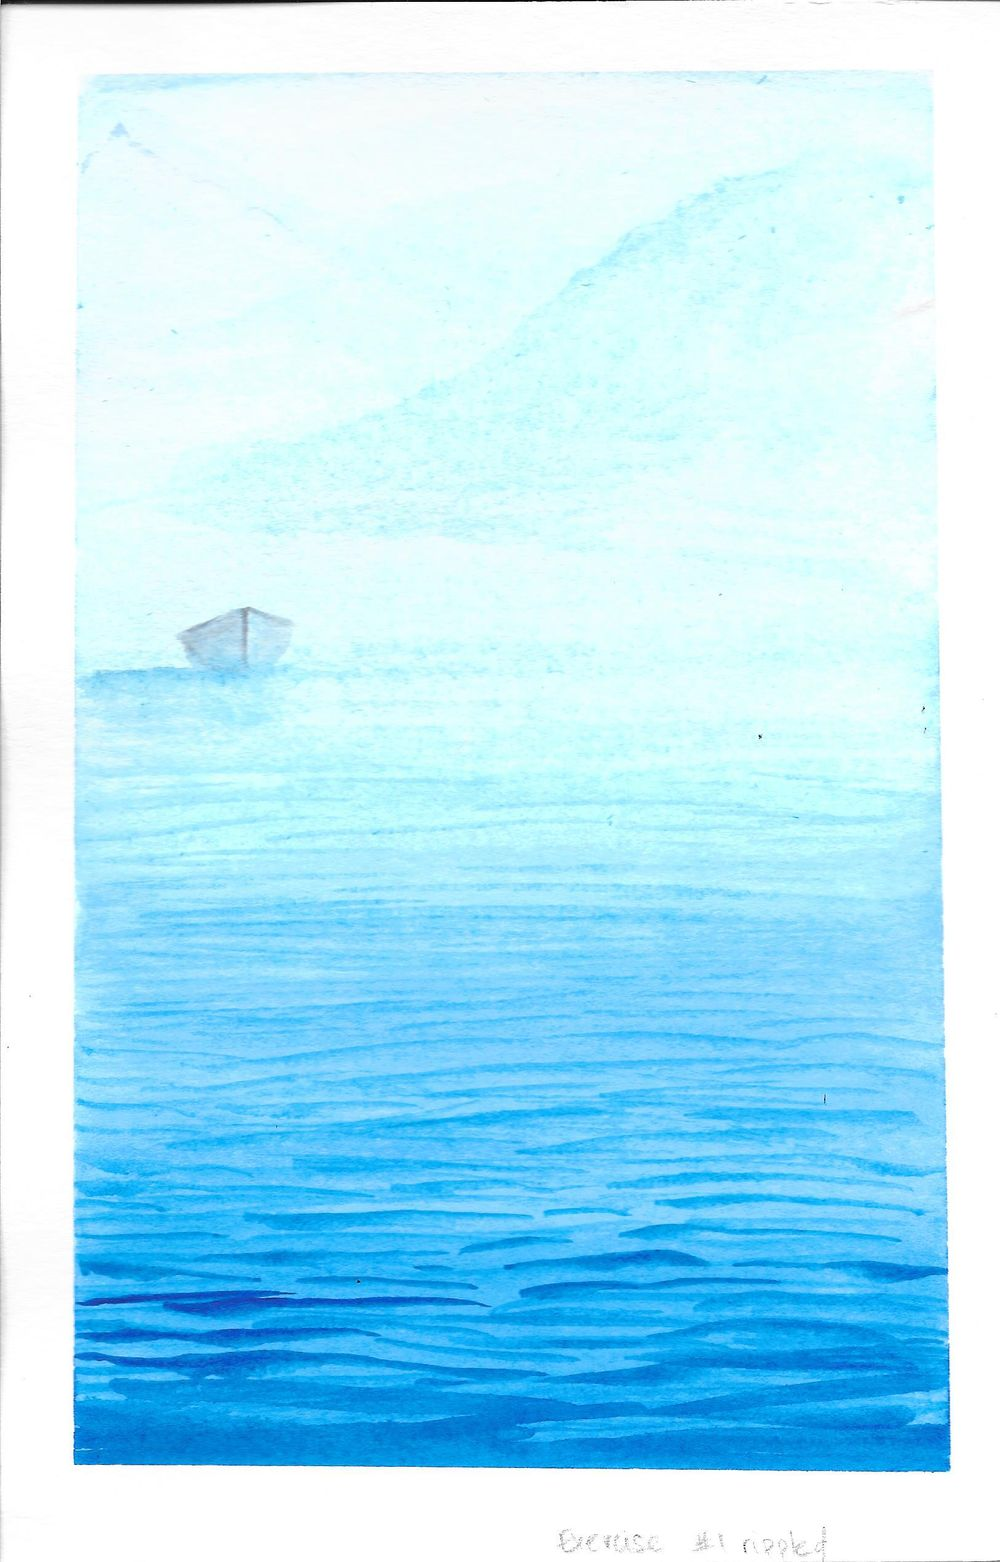 Watercolor Seascape & Boats - image 5 - student project